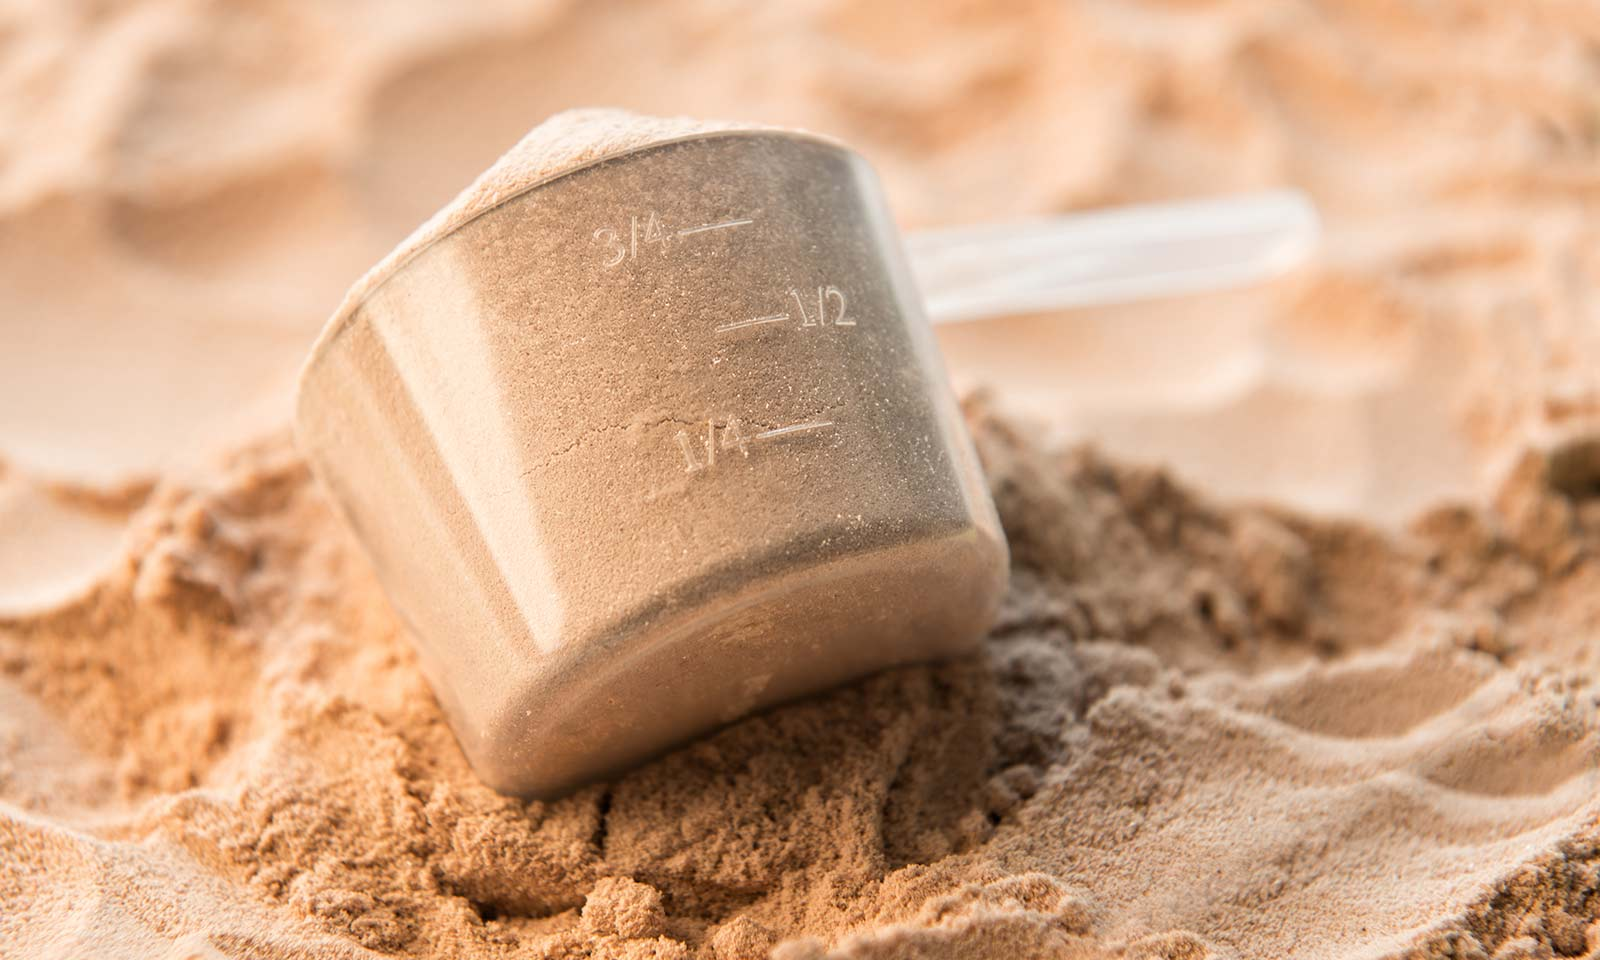 Easy-Way-To-Tell-If-Your-Whey-Protein-Powder-Might-Be-Spiked-With-Amino-Acids